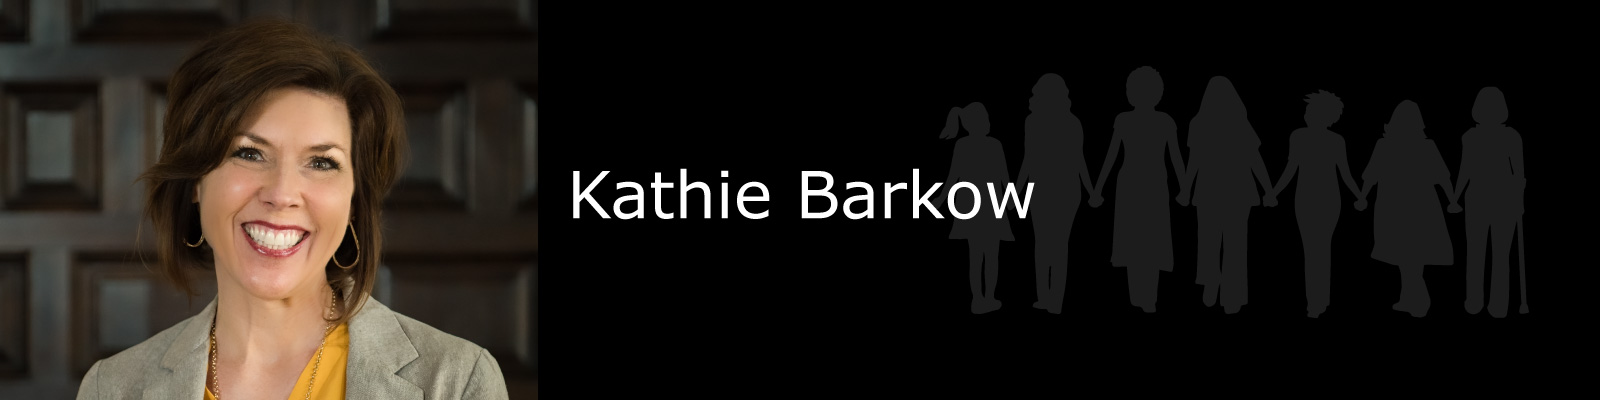 Photo of Kathie Barkow.